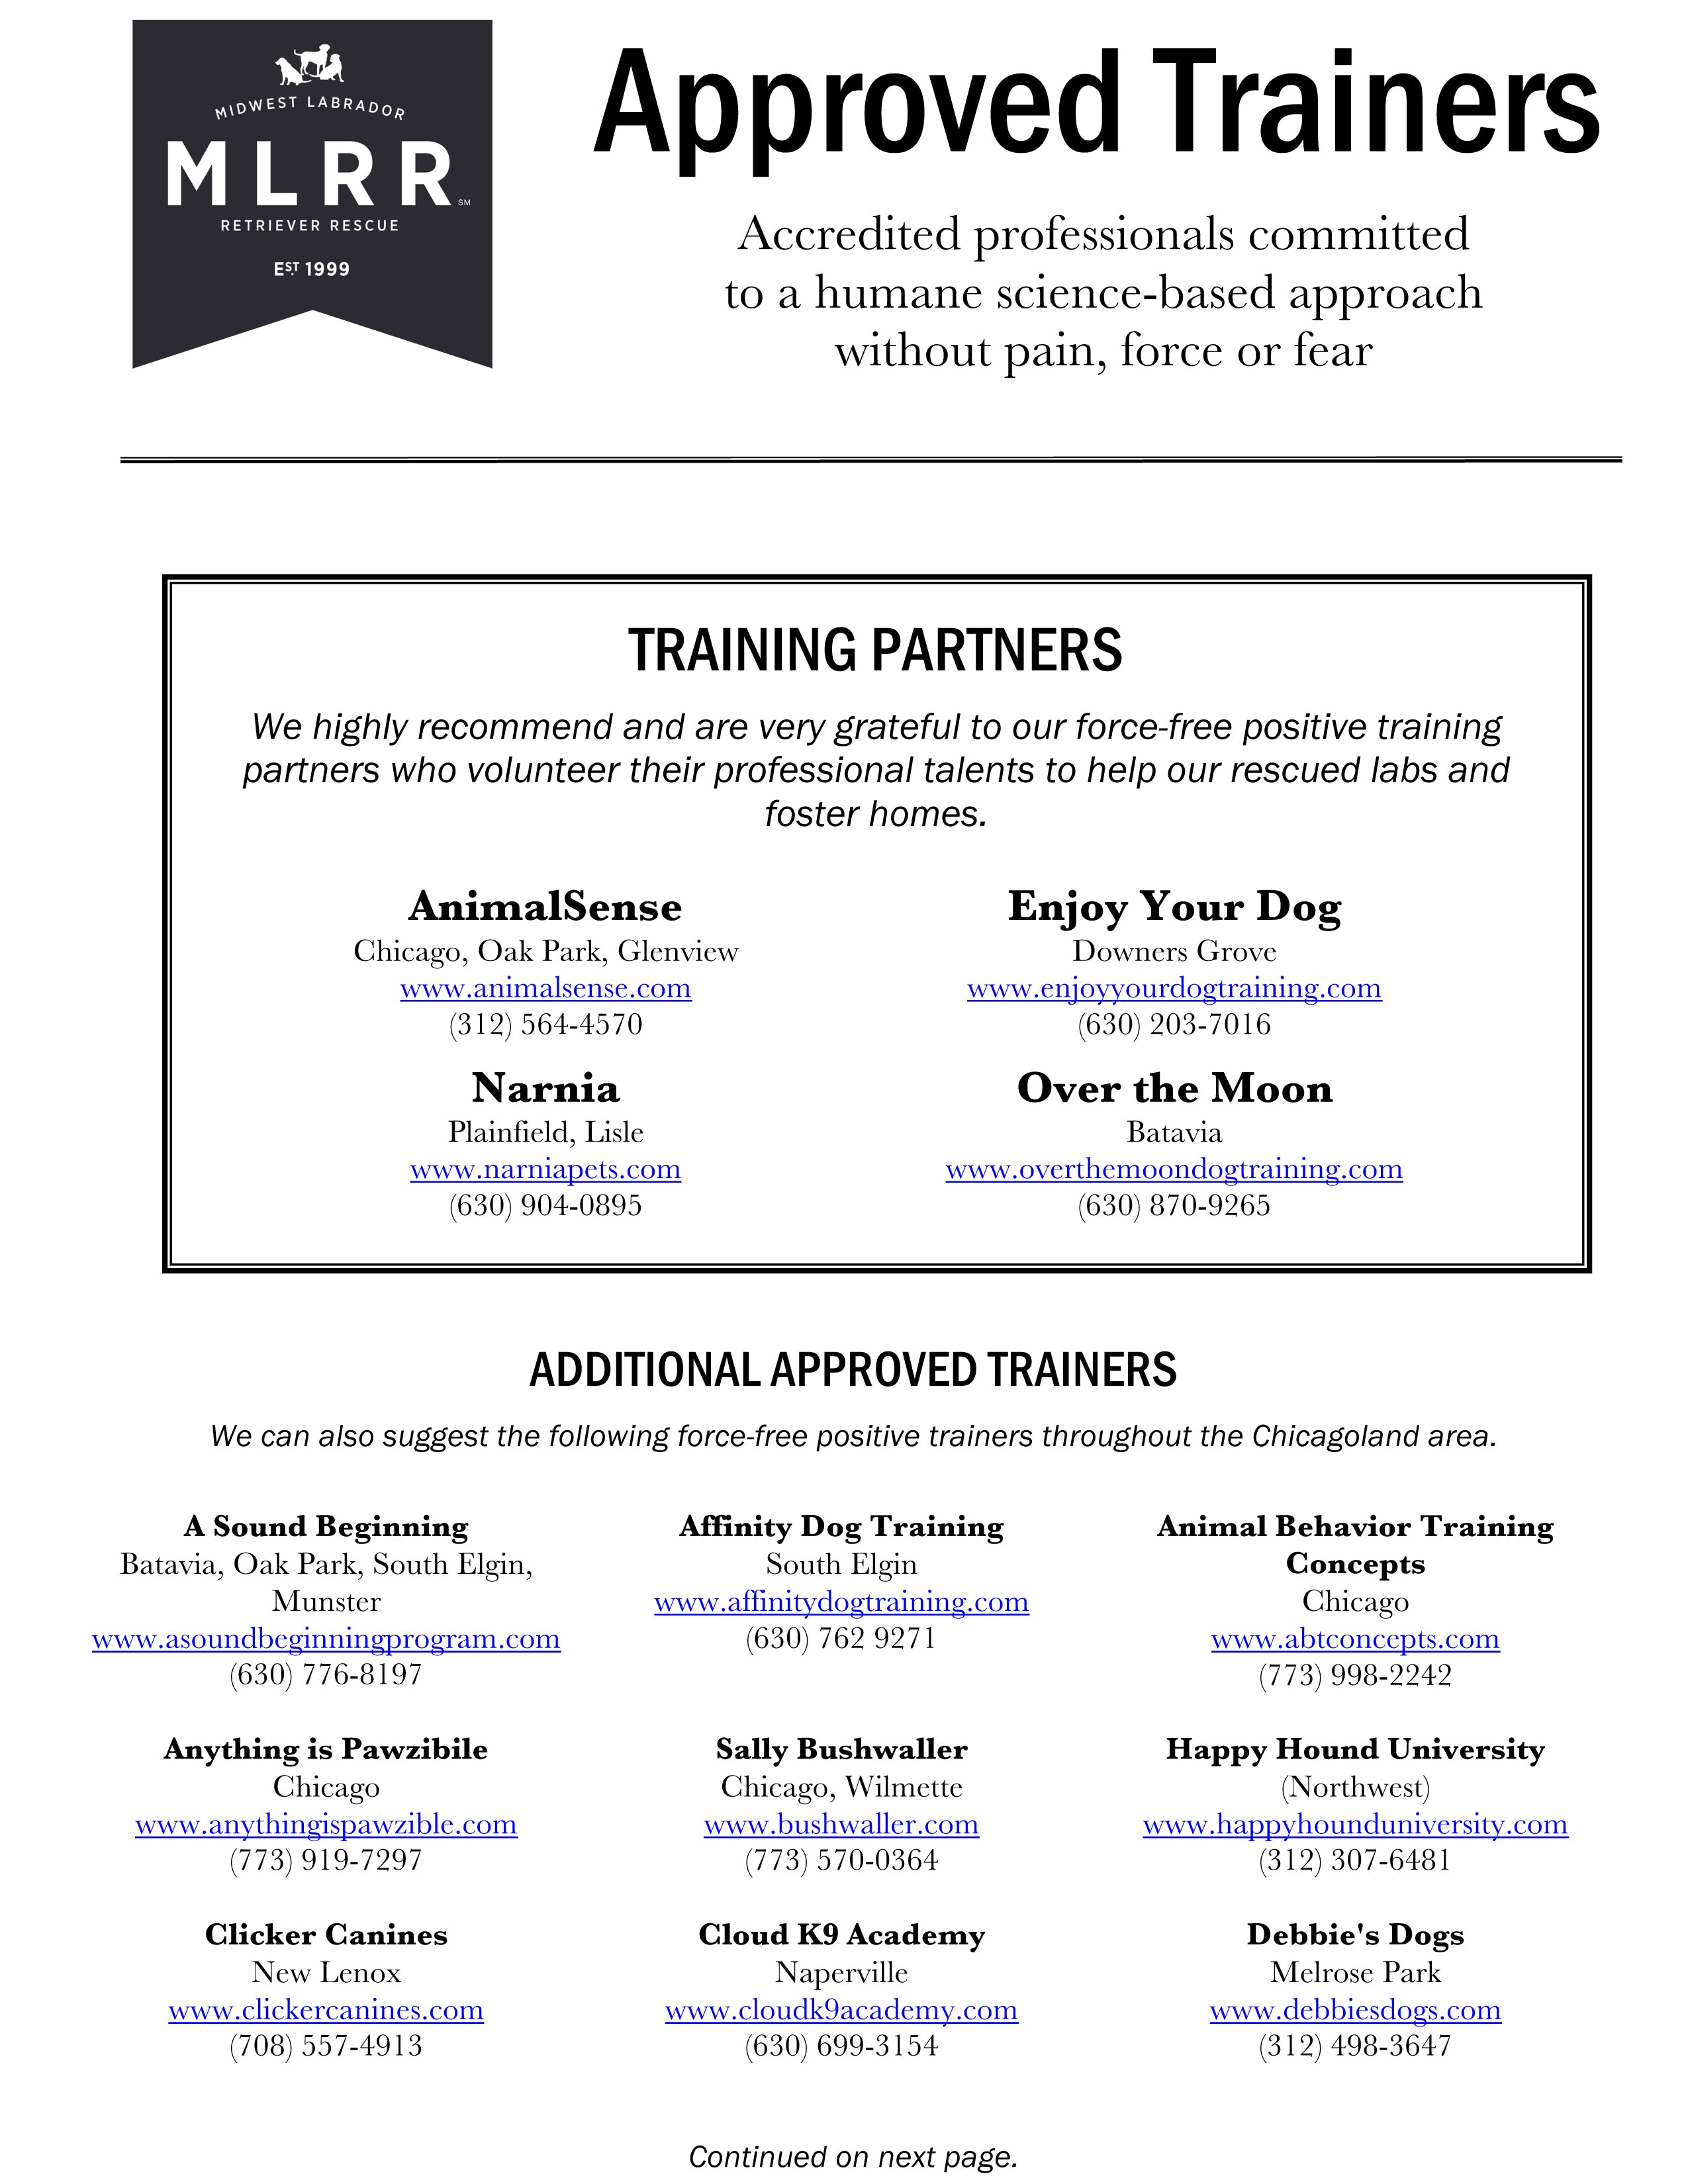 Approved Trainer Handout p.2